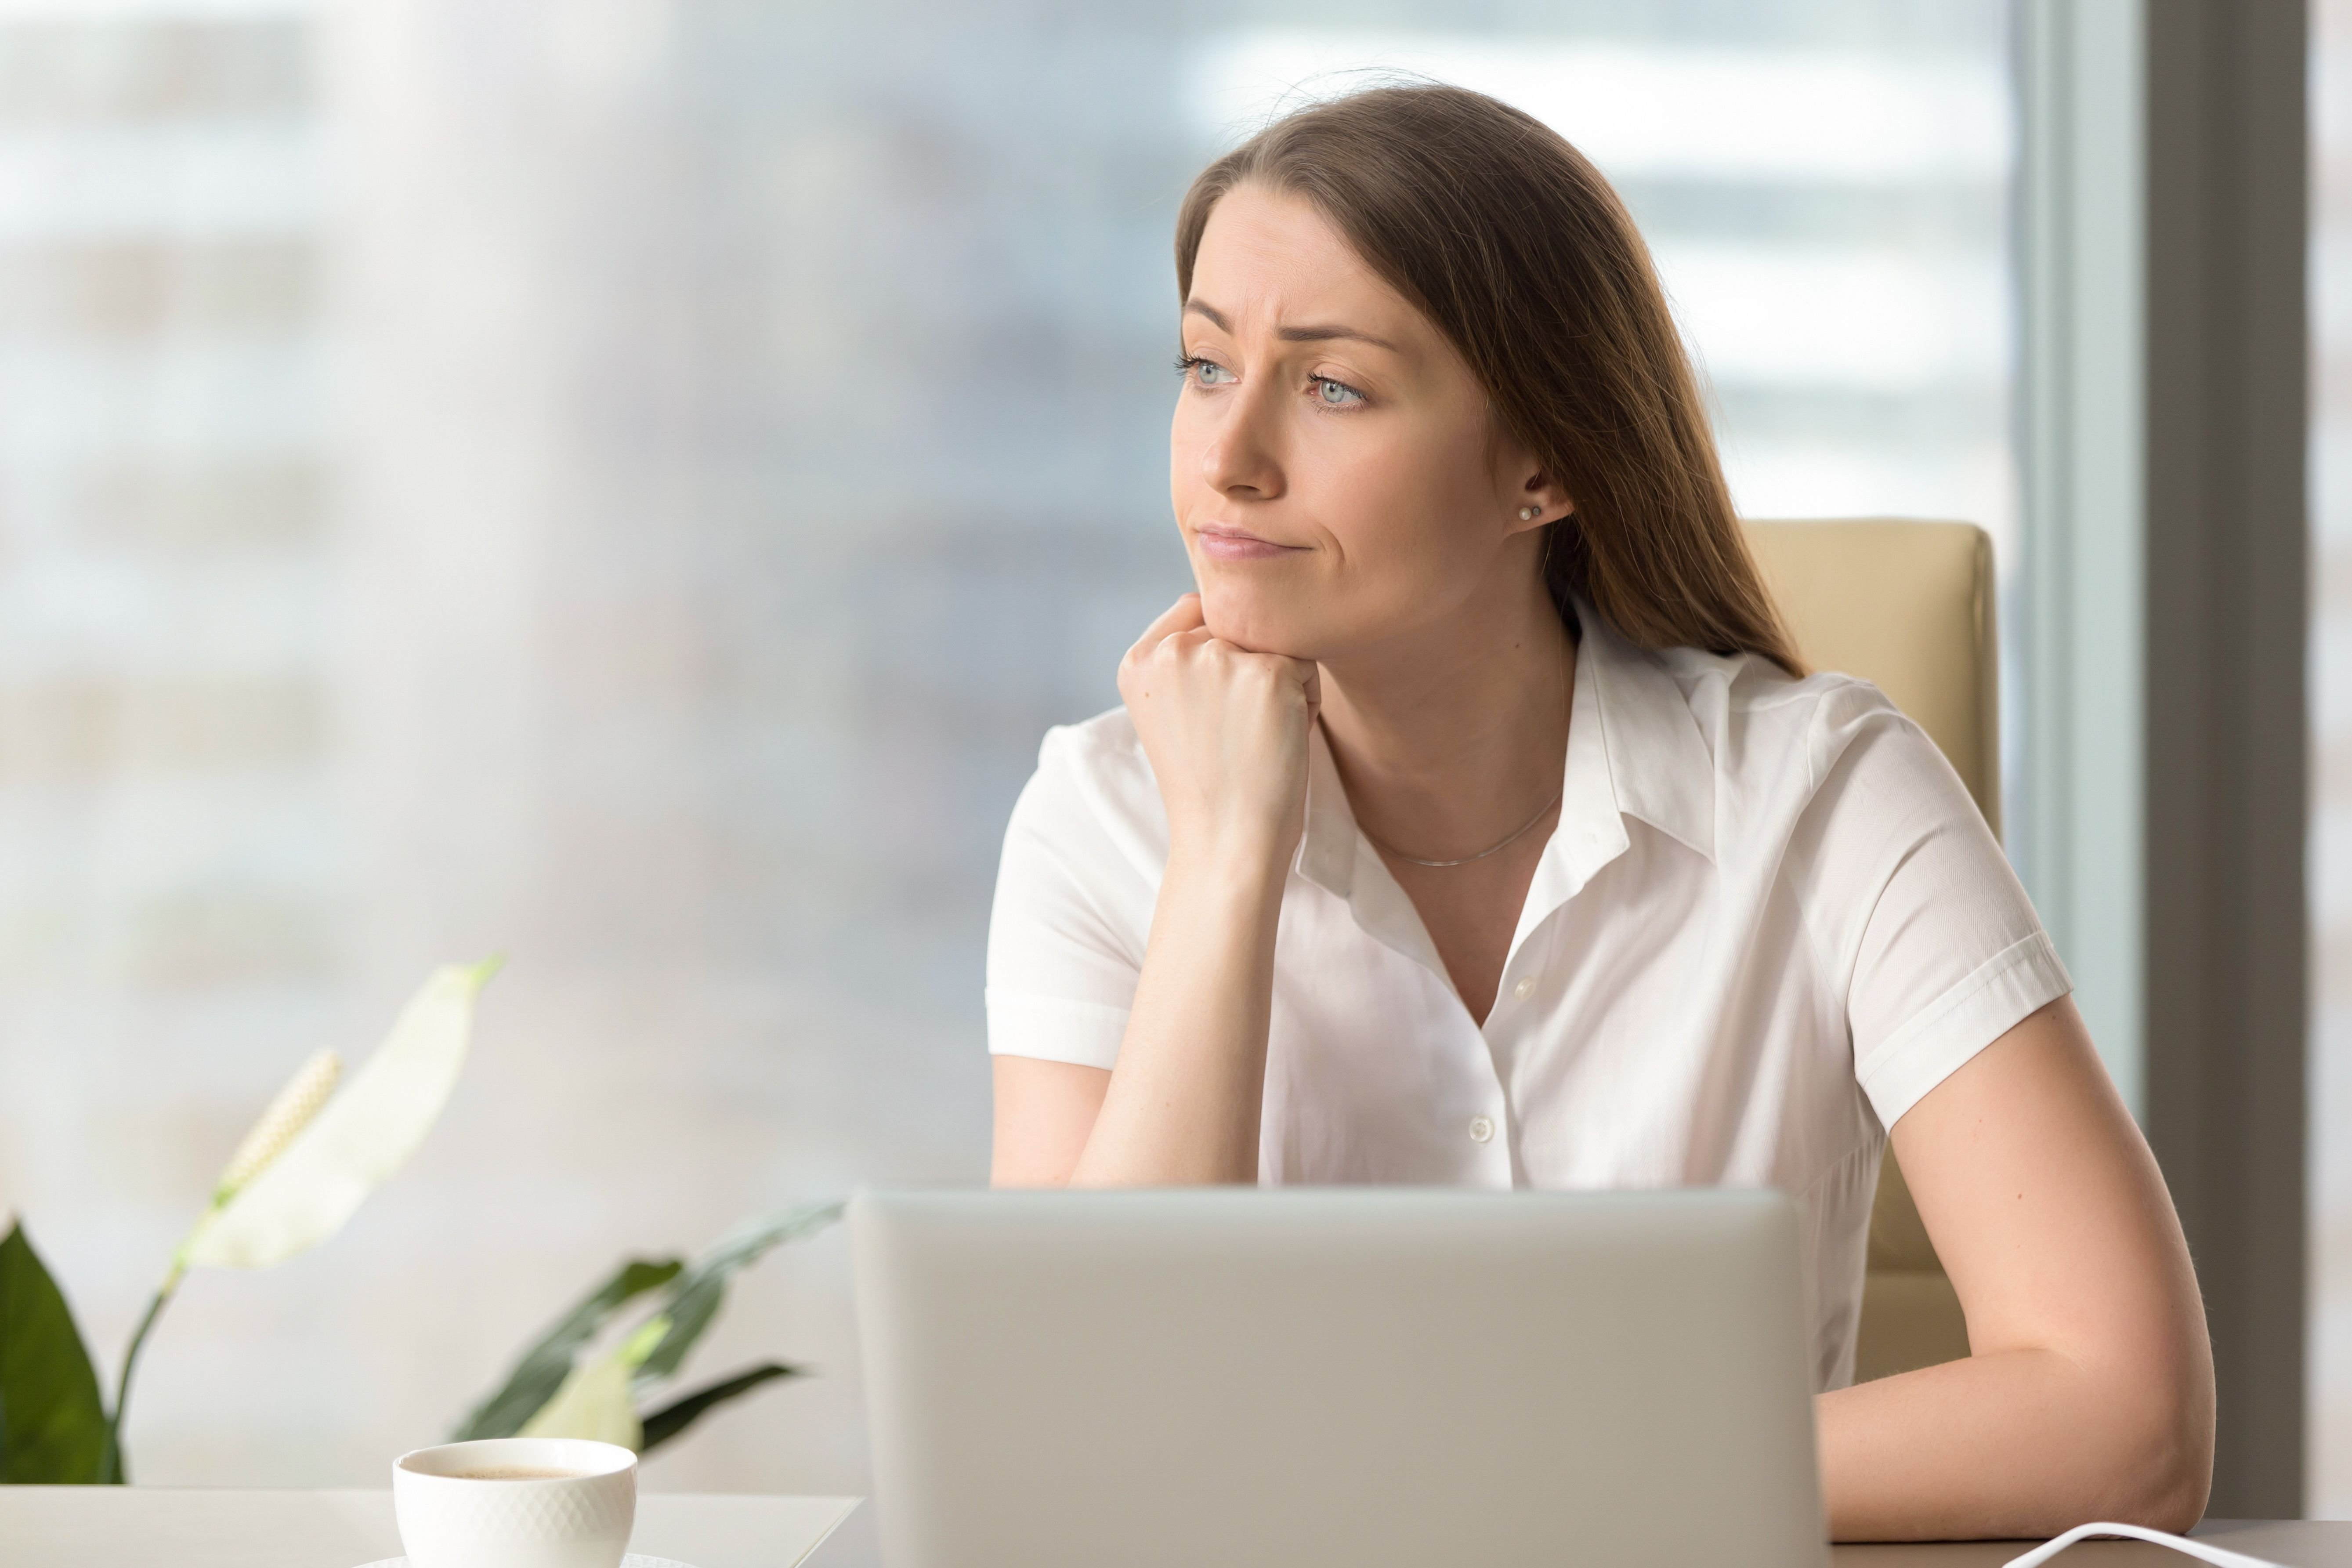 A woman thinking while working on something at work. | Photo: Shutterstock